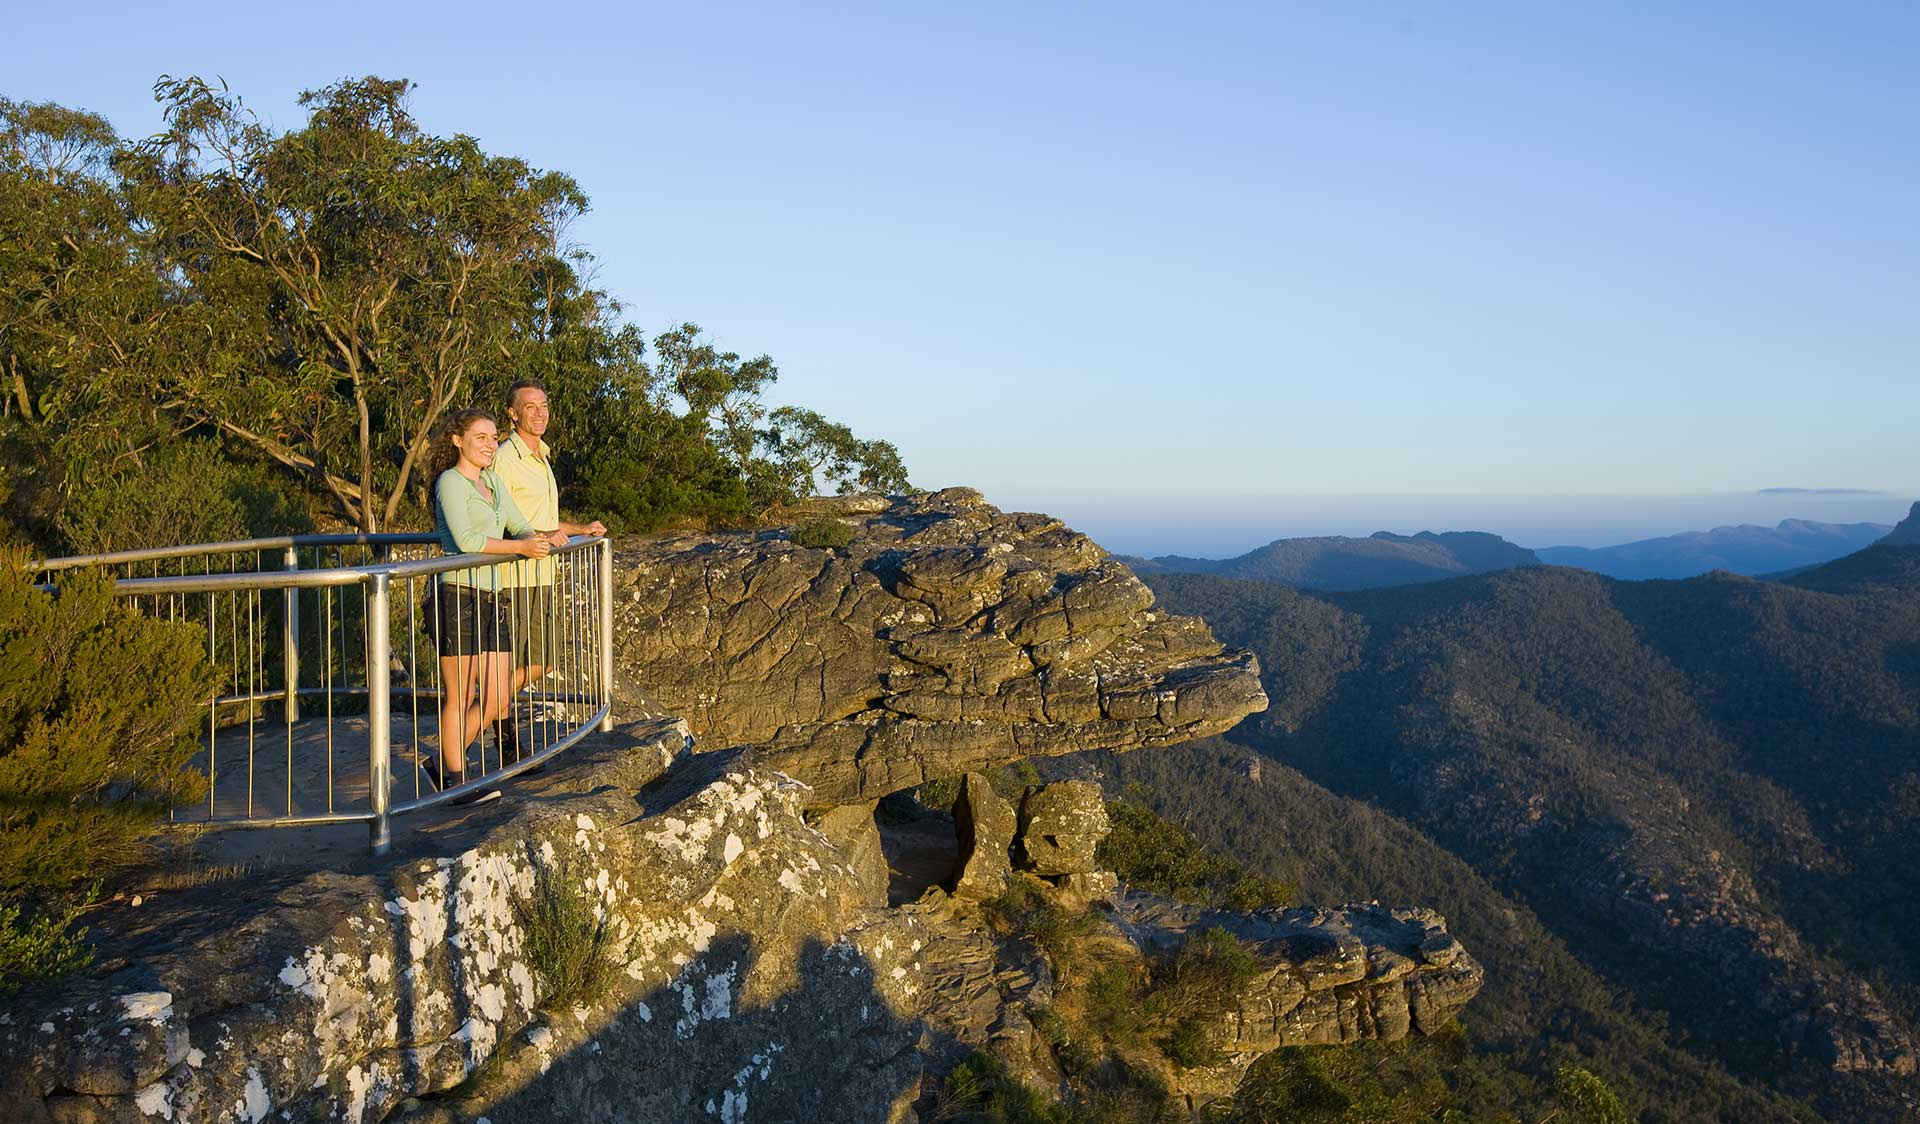 A couple take in the views from Reeds Lookout